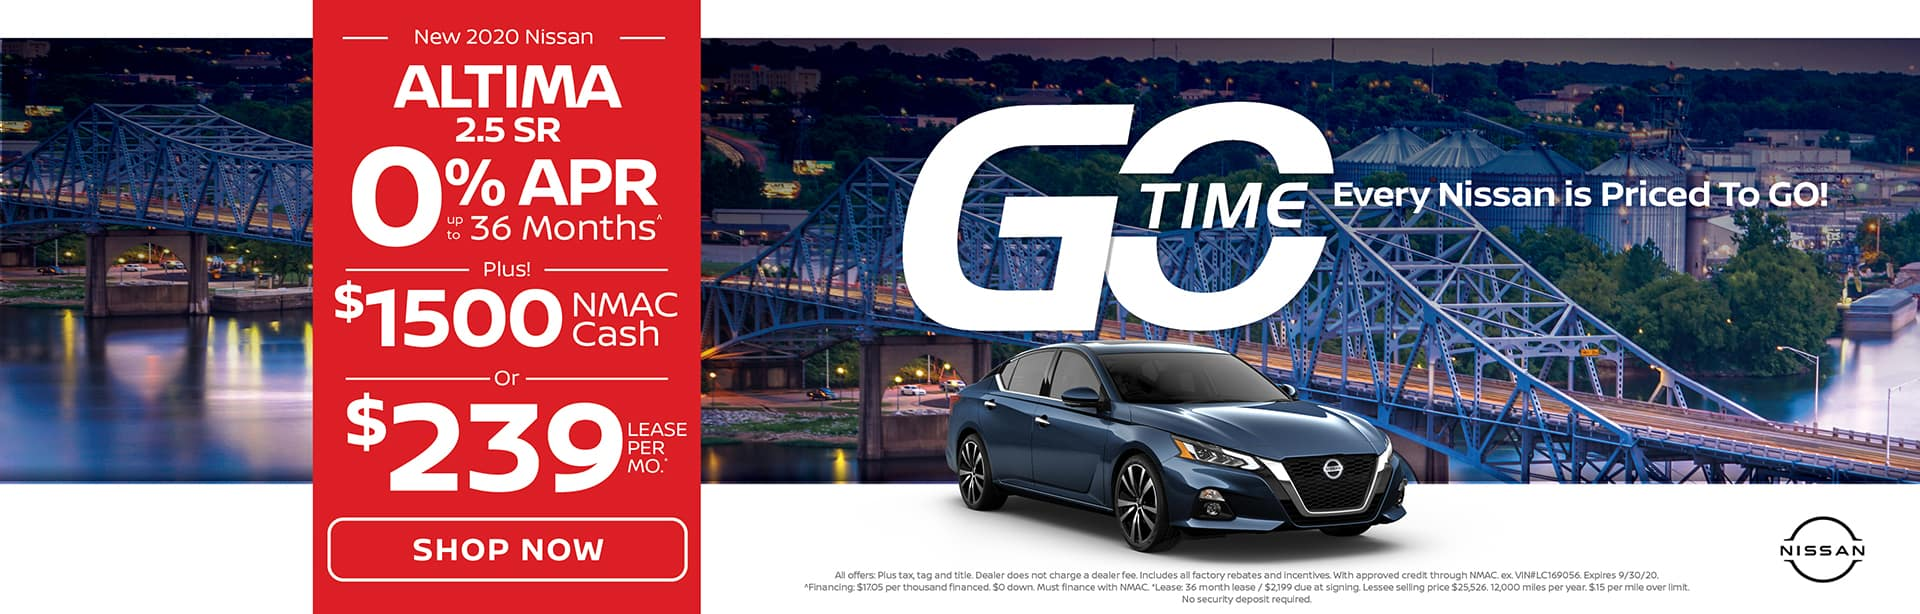 GO TIME - New 2020 Nissan Altima